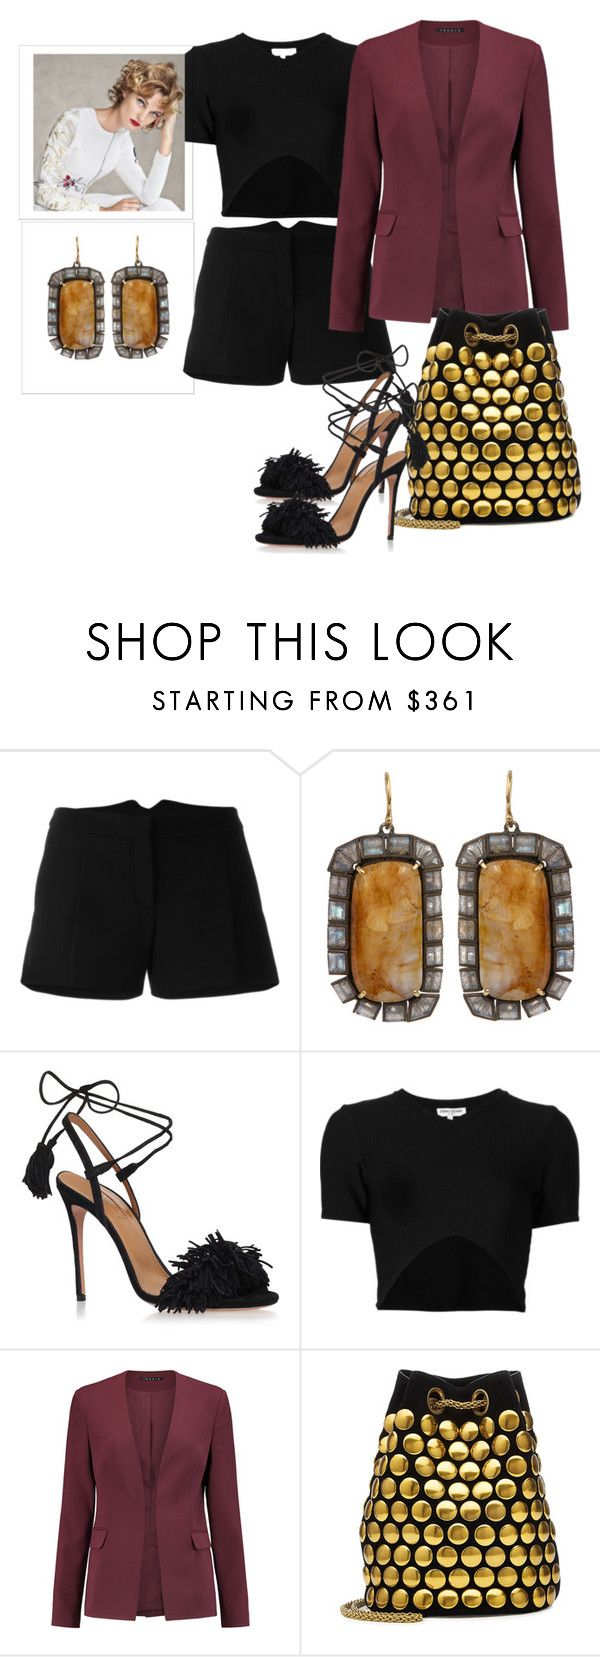 """""""Black shorts"""" by fashionrushs ❤ liked on Polyvore featuring Lanvin, Nak Armstrong, Aquazzura, Opening Ceremony, Theory and Jérôme Dreyfuss"""